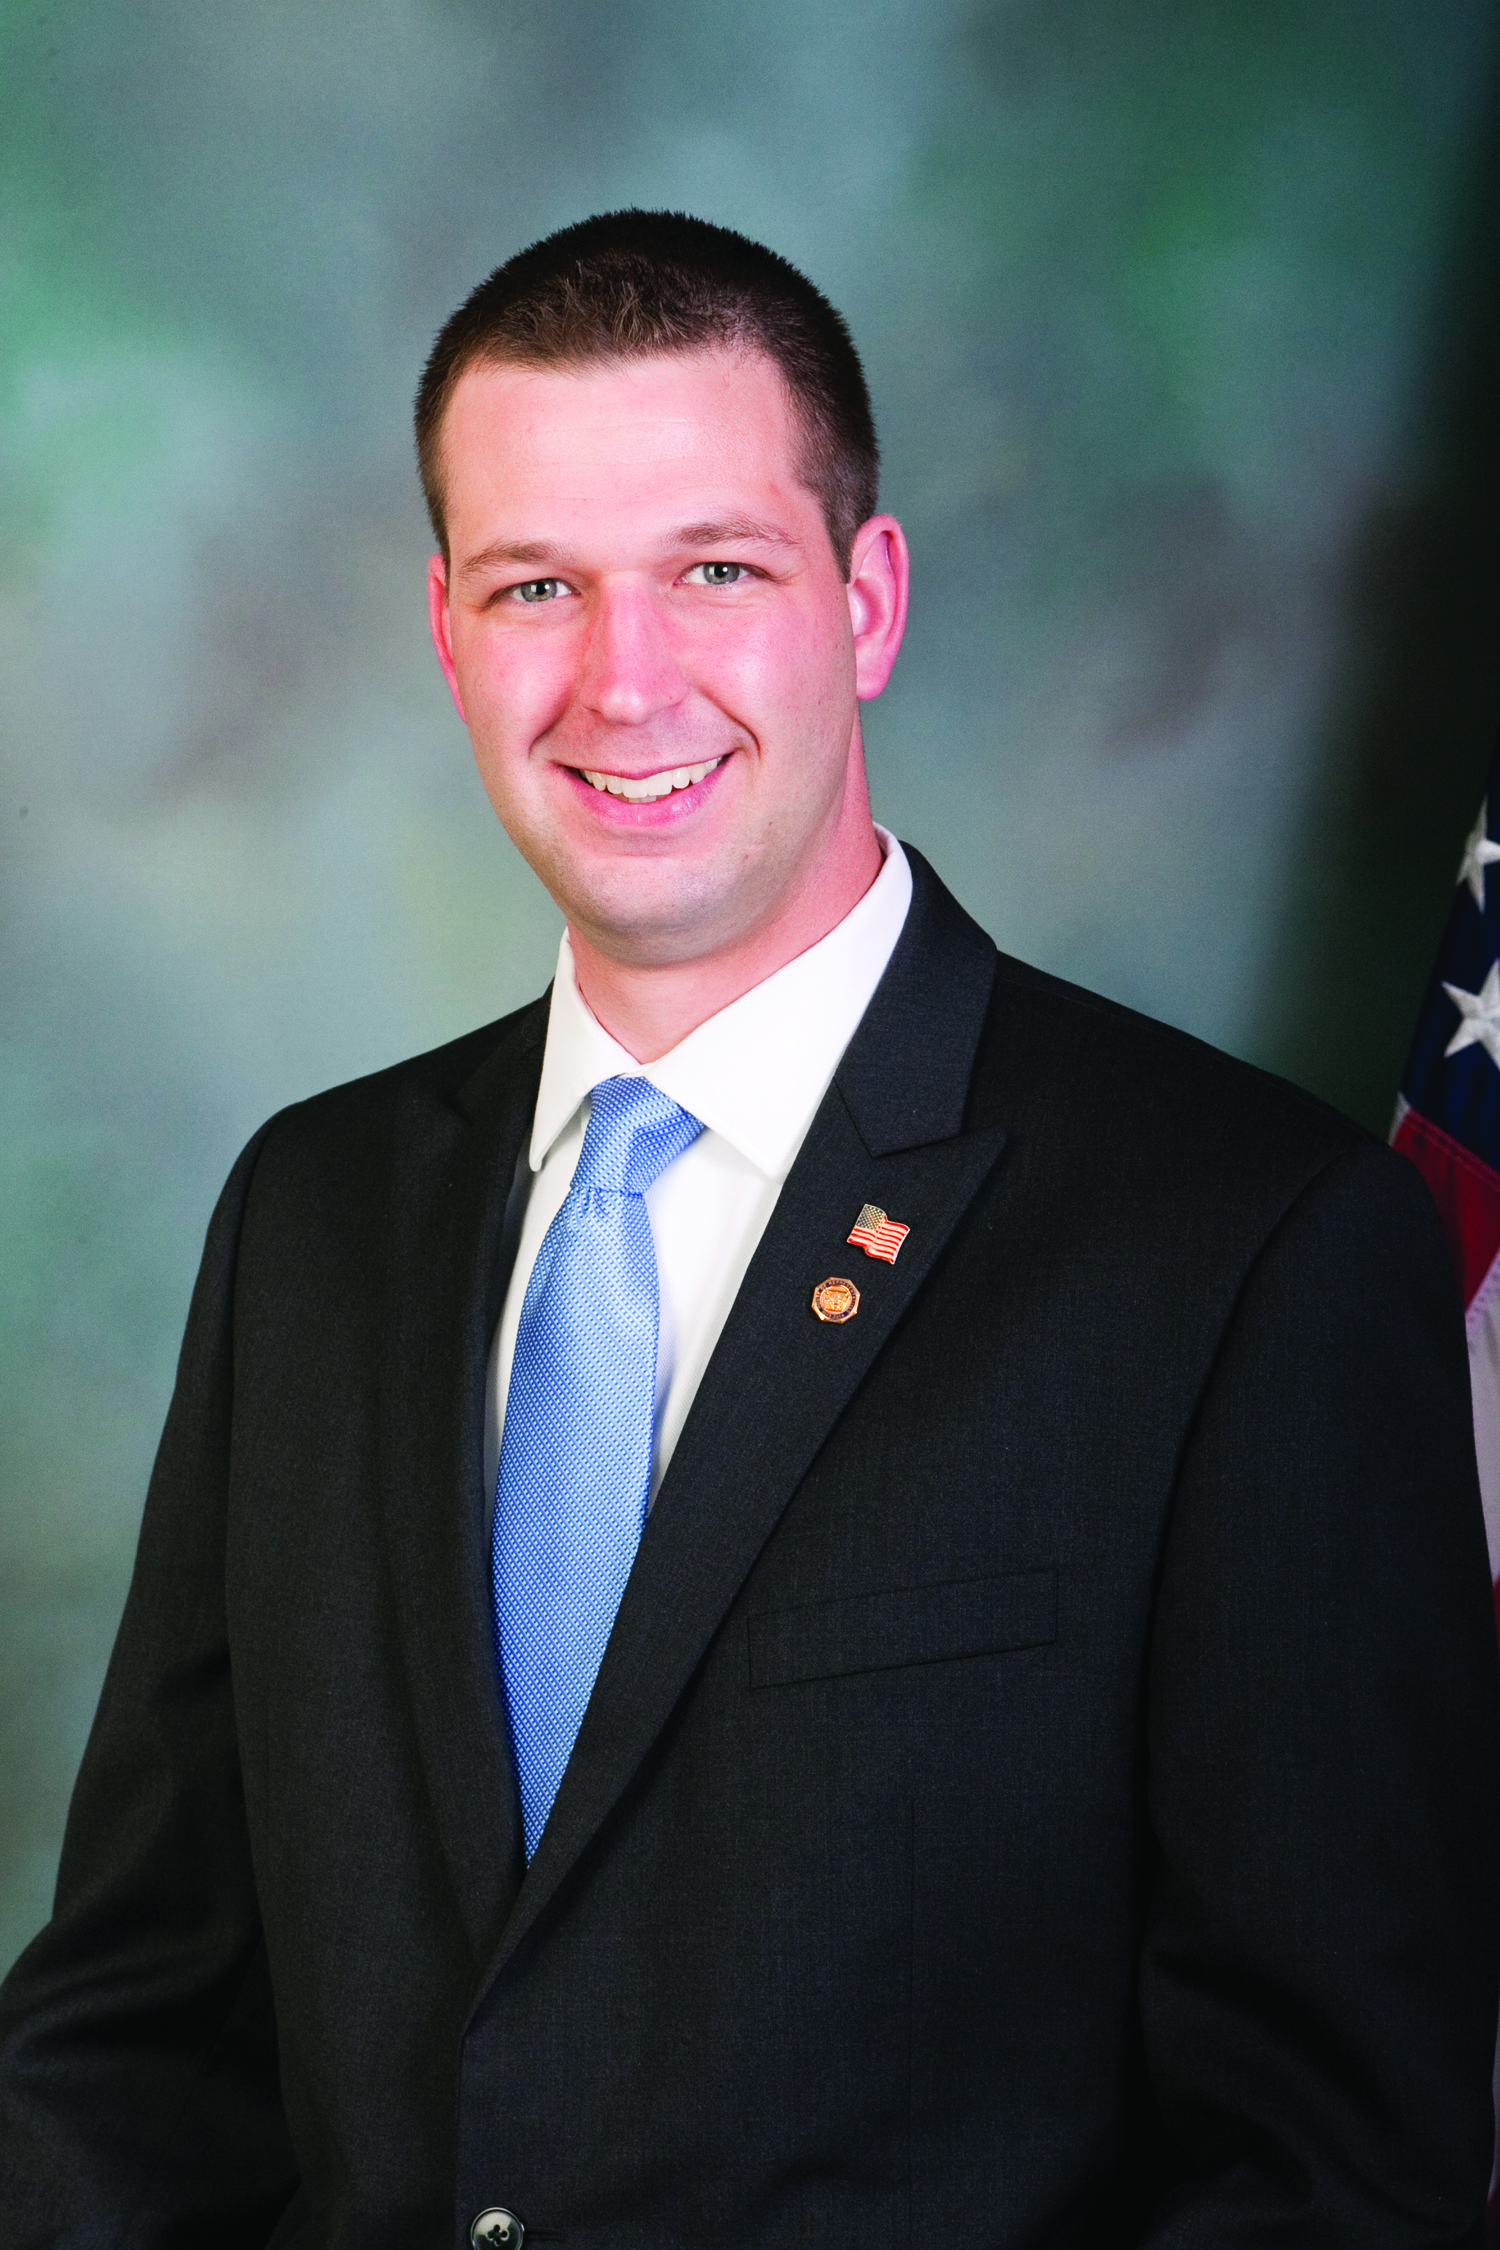 Gabler Supports Responsible, Pro-Taxpayer Budget